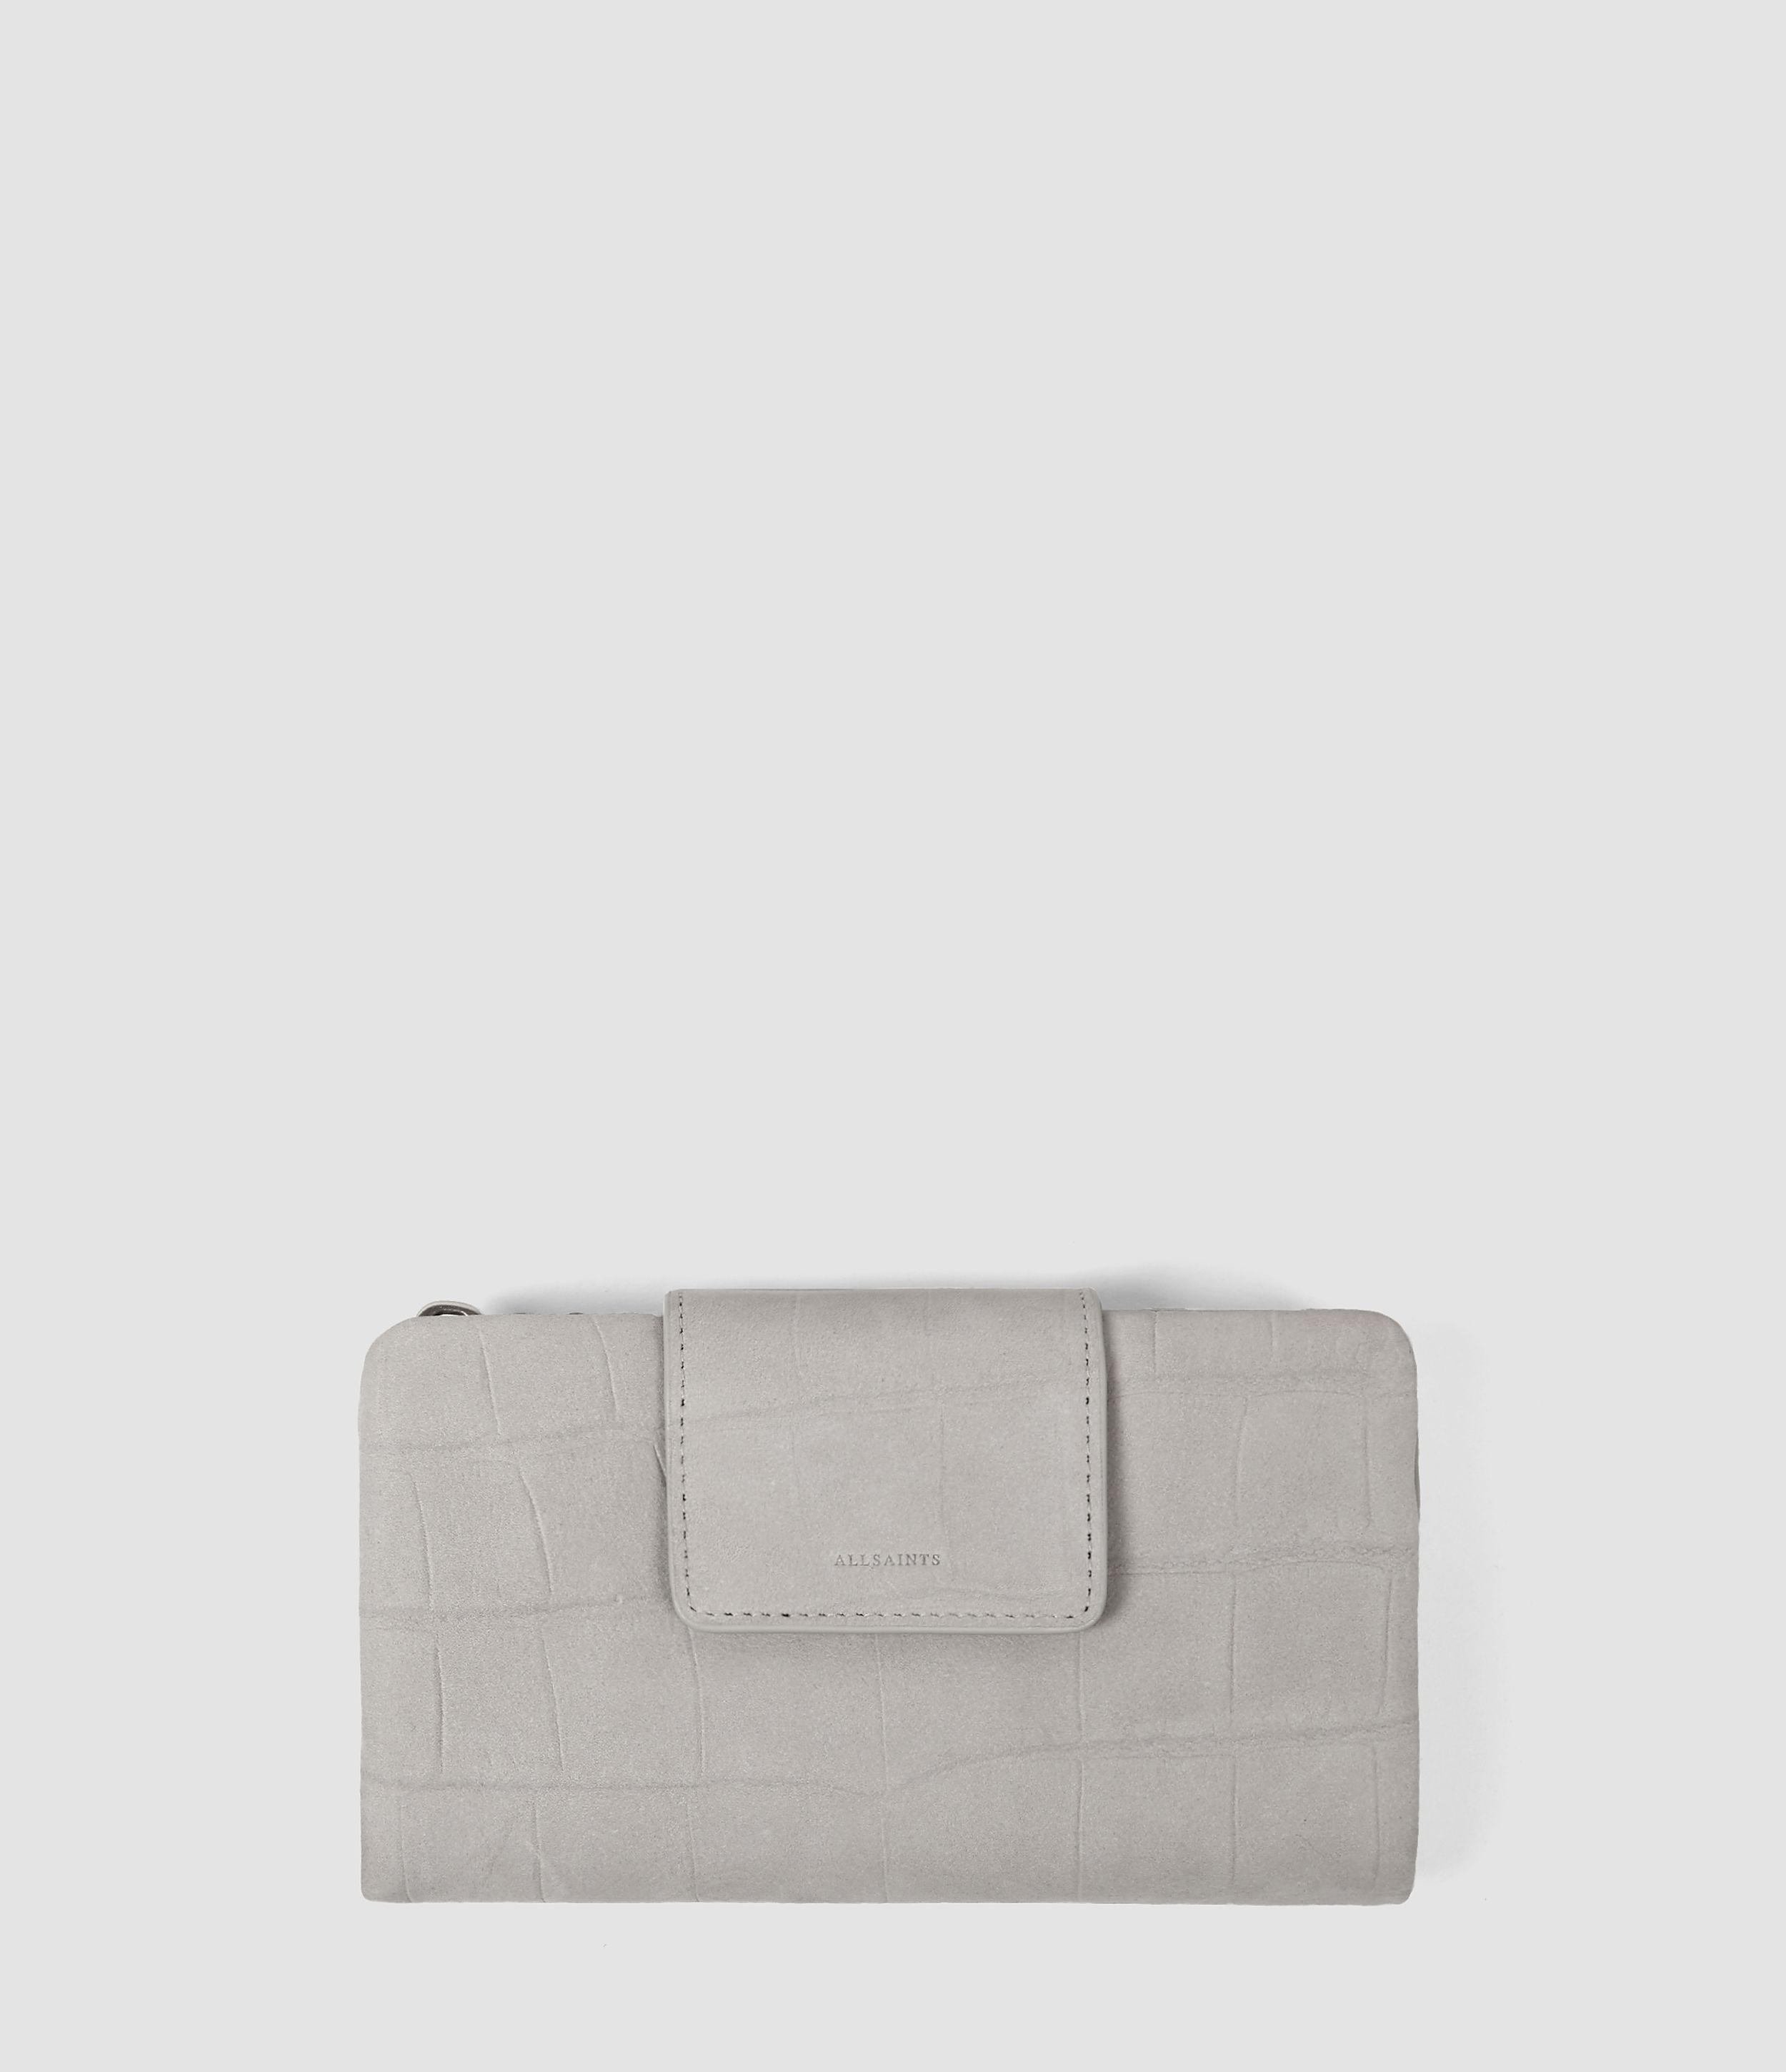 Allsaints Paradise Japanese Wallet in Gray